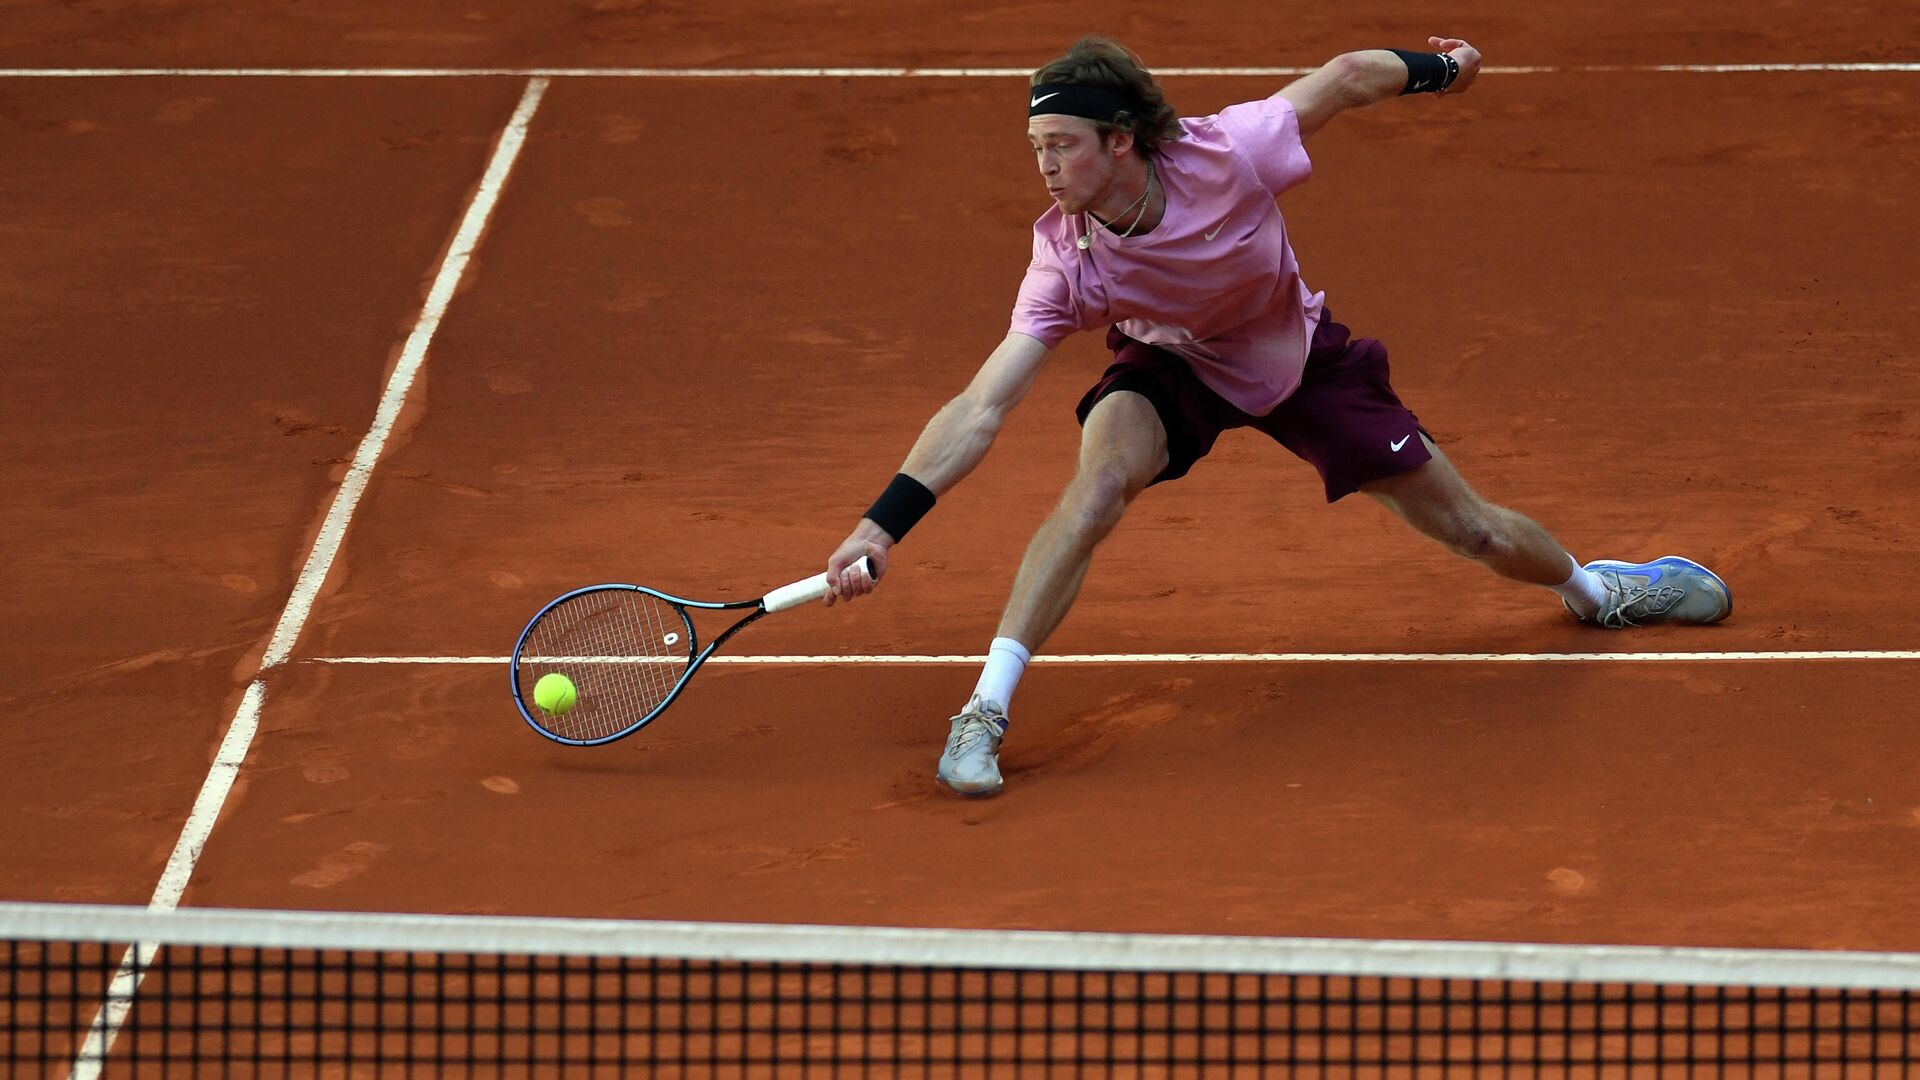 Russia's Andrey Rublev returns the ball to US John Isner during their 2021 ATP Tour Madrid Open tennis tournament singles match at the Caja Magica in Madrid on May 6, 2021. (Photo by OSCAR DEL POZO / AFP) - РИА Новости, 1920, 13.05.2021